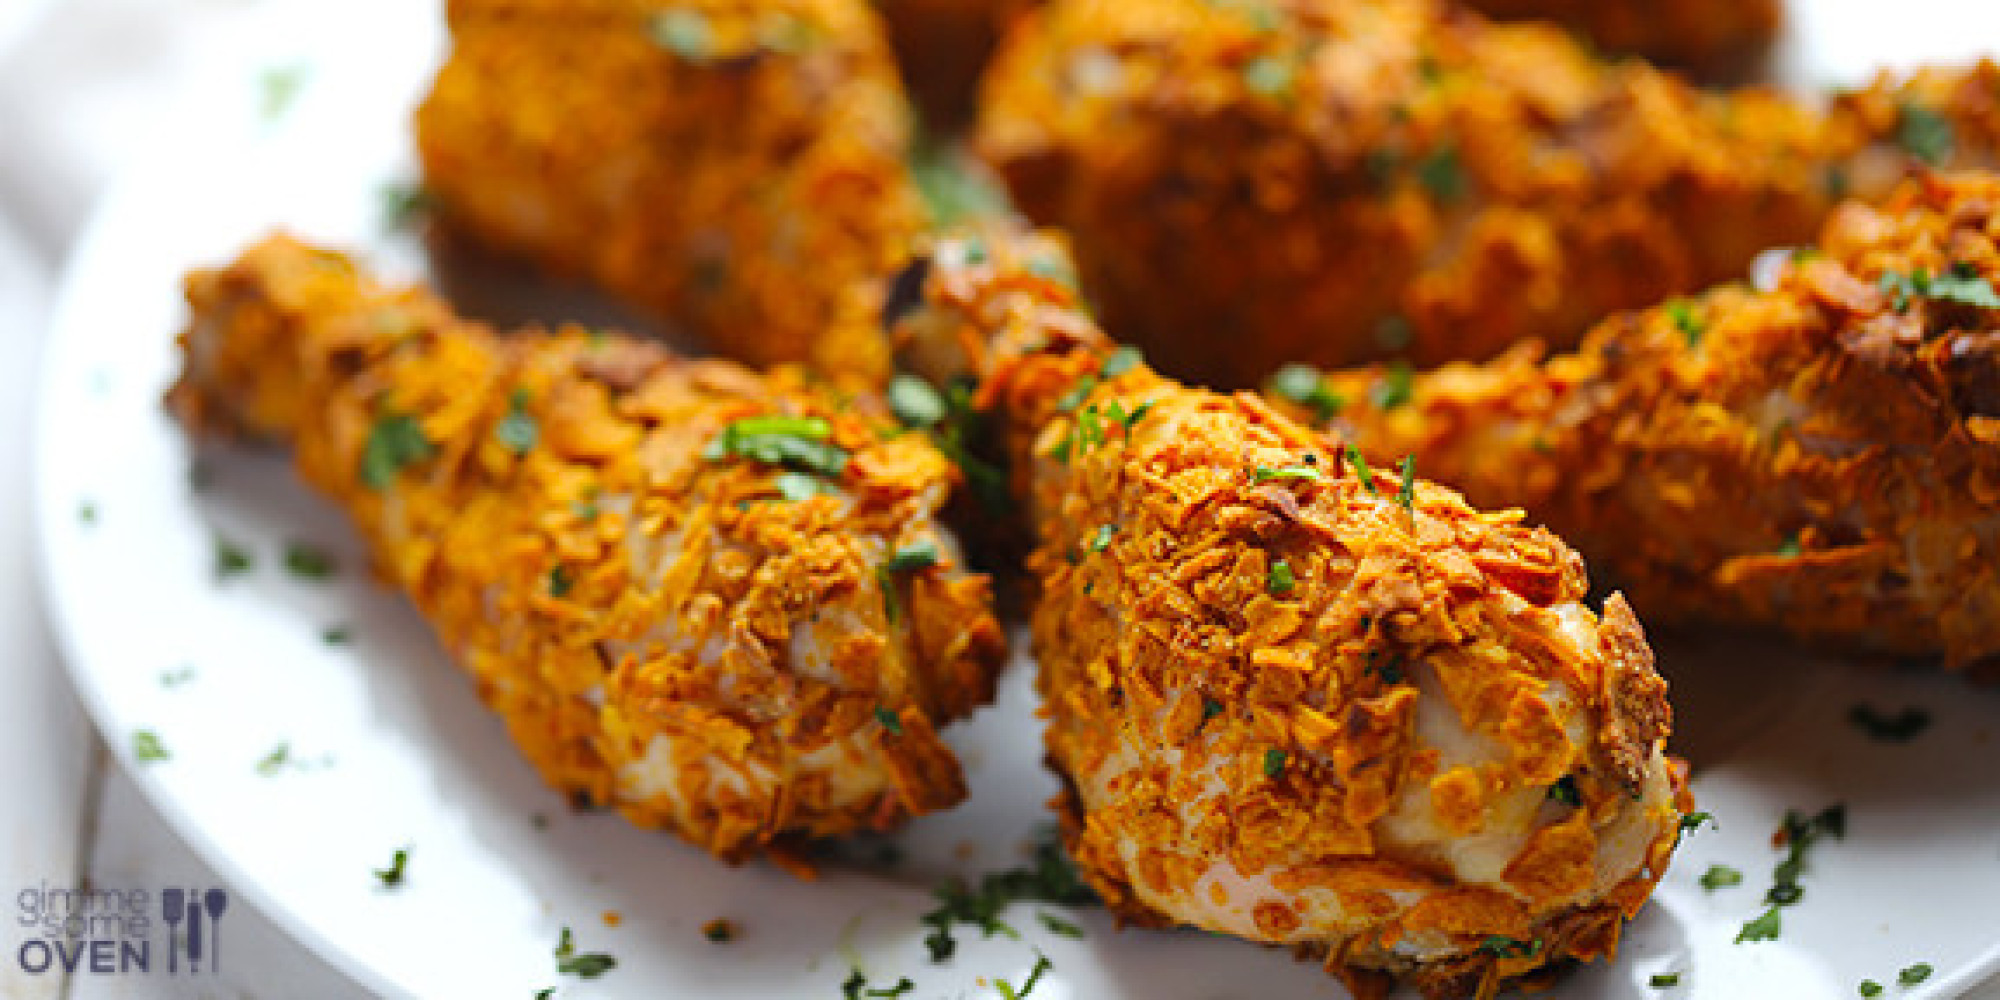 Chicken Drumstick Recipes: Go Ahead, Eat With Your Hands (photos)  Huffpost